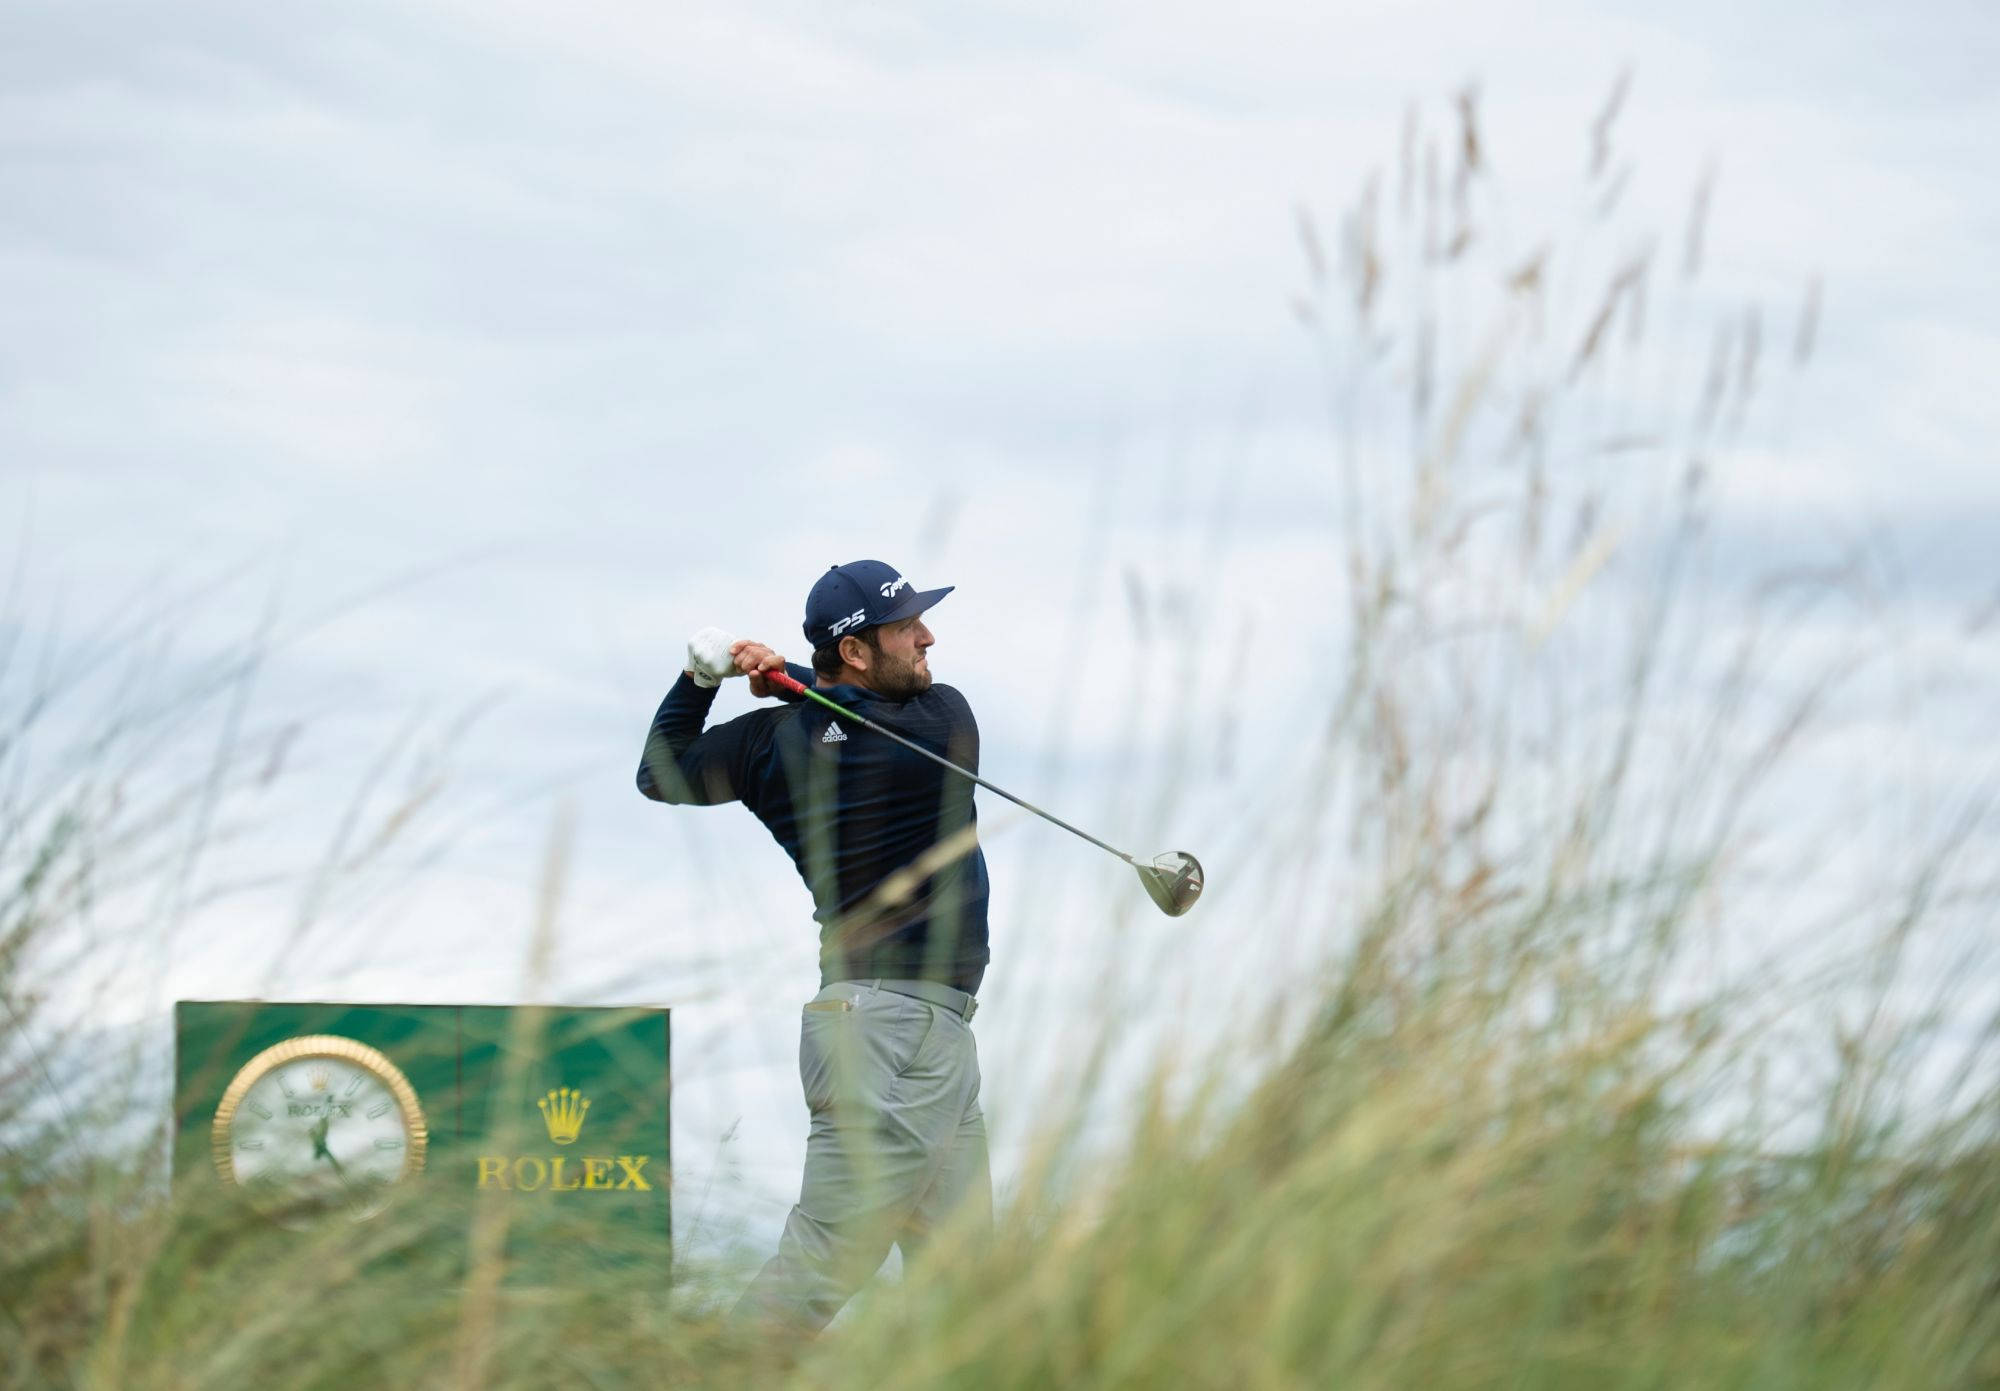 Rolex Testimonee Jon Rahm teeing off on the eighth hole at The 14th Open (Photos: Rolex)